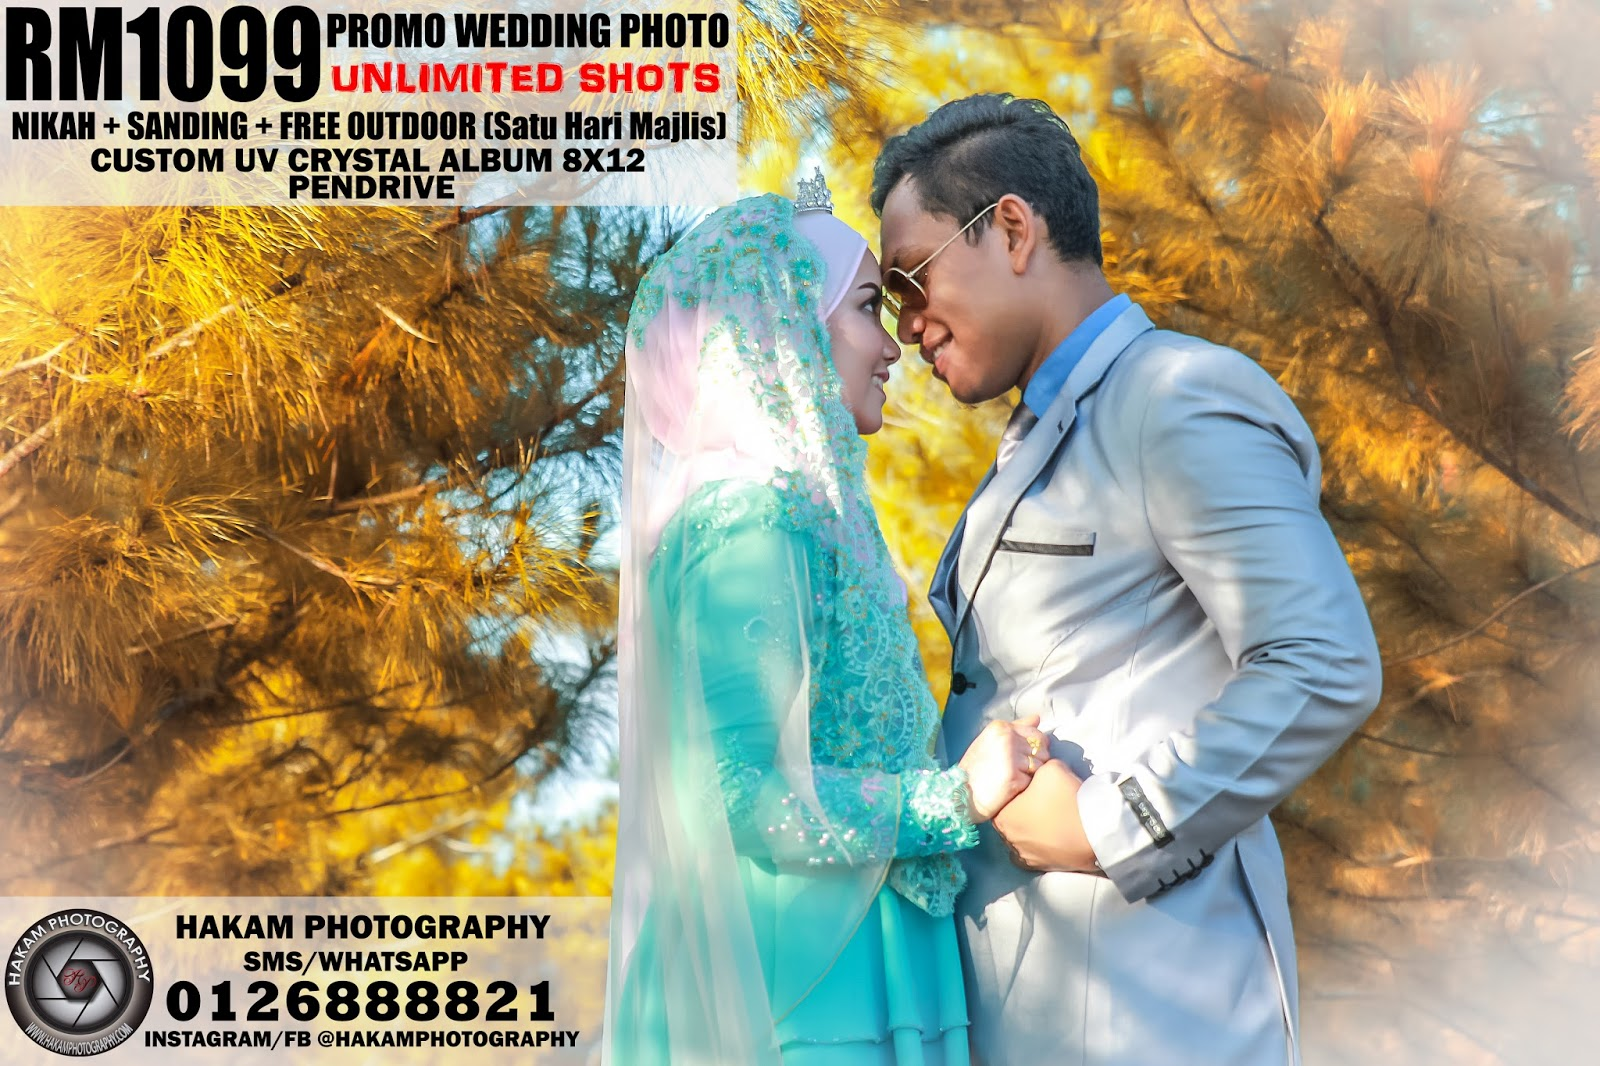 Wedding photography promotion in malaysia